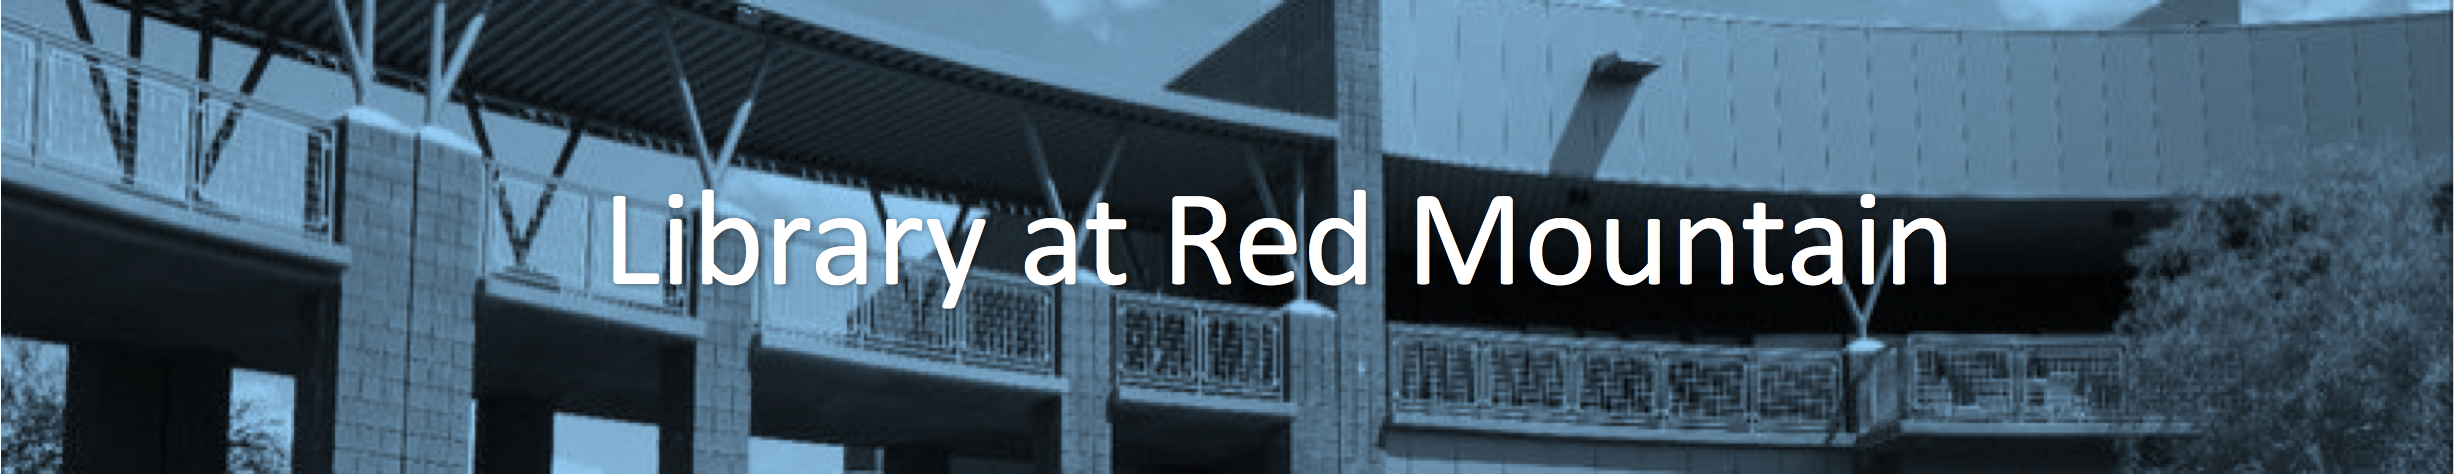 Red Mountain Library Header